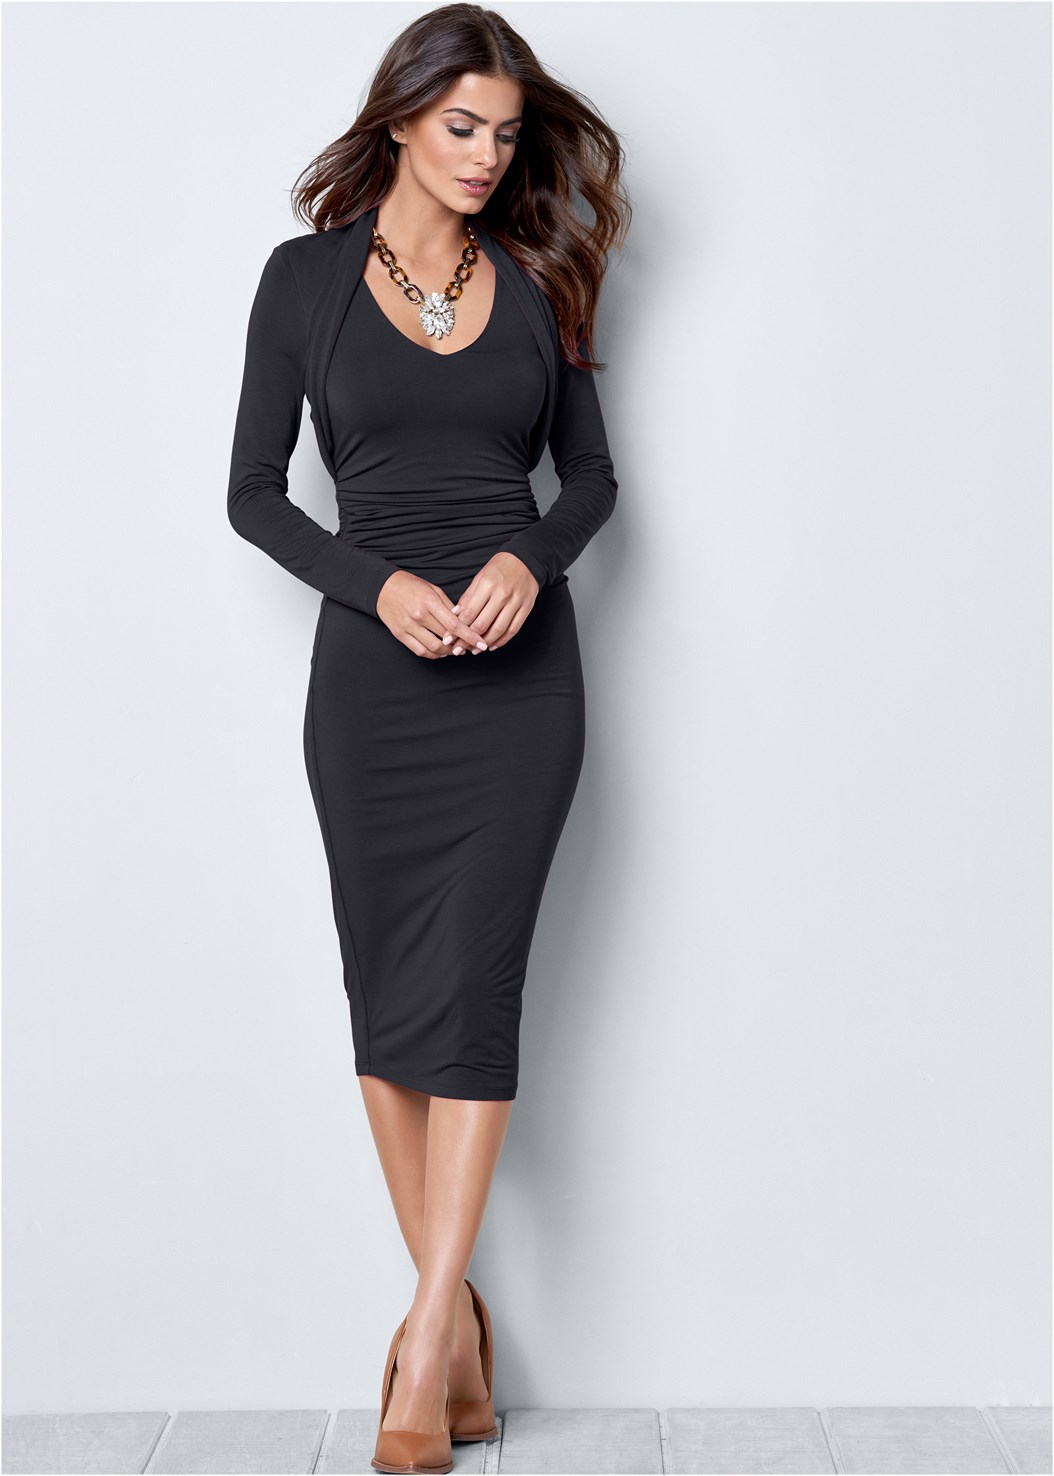 Dress With Faux Shrug,Confidence Seamless Dress,Long Medallion Necklace